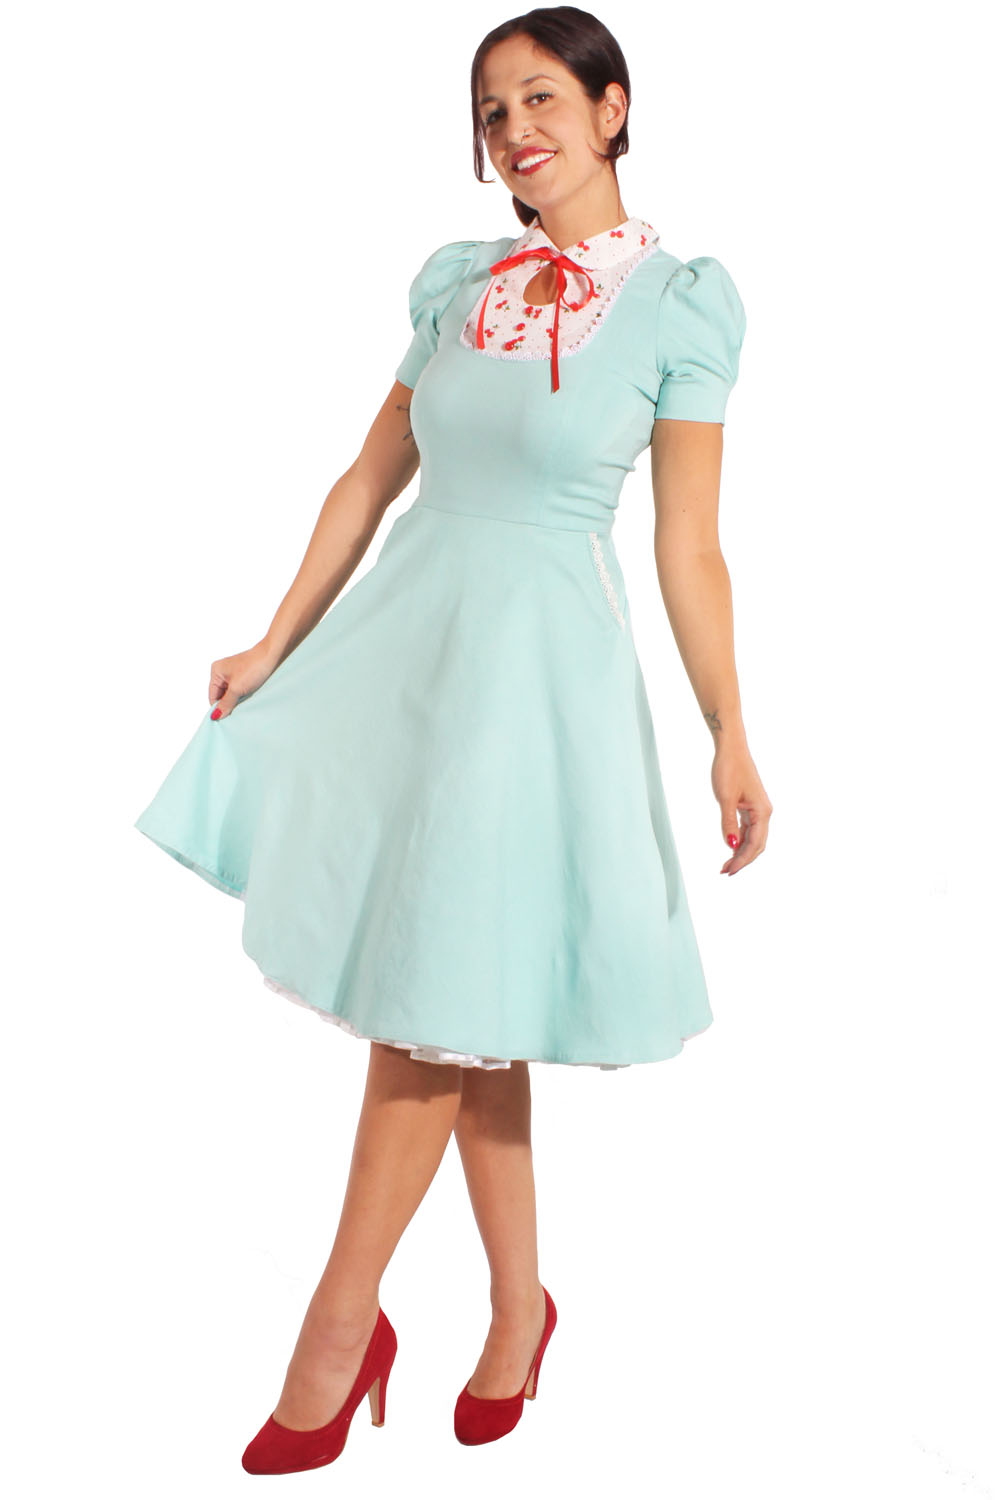 rockabilly Kirschen Swing Kleid Puffärmel Cherry Petticoatkleid mint